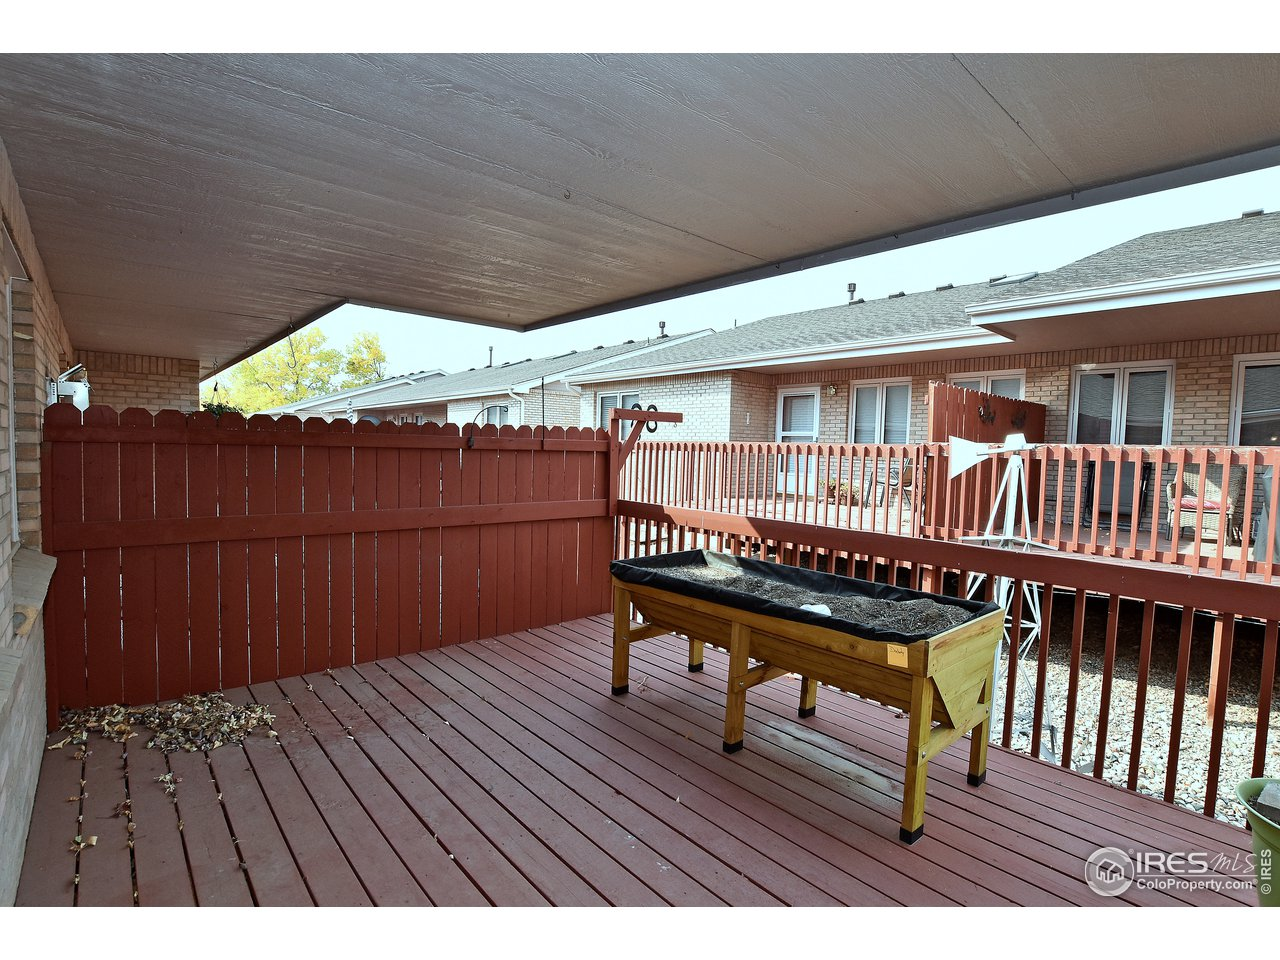 Back deck is covered